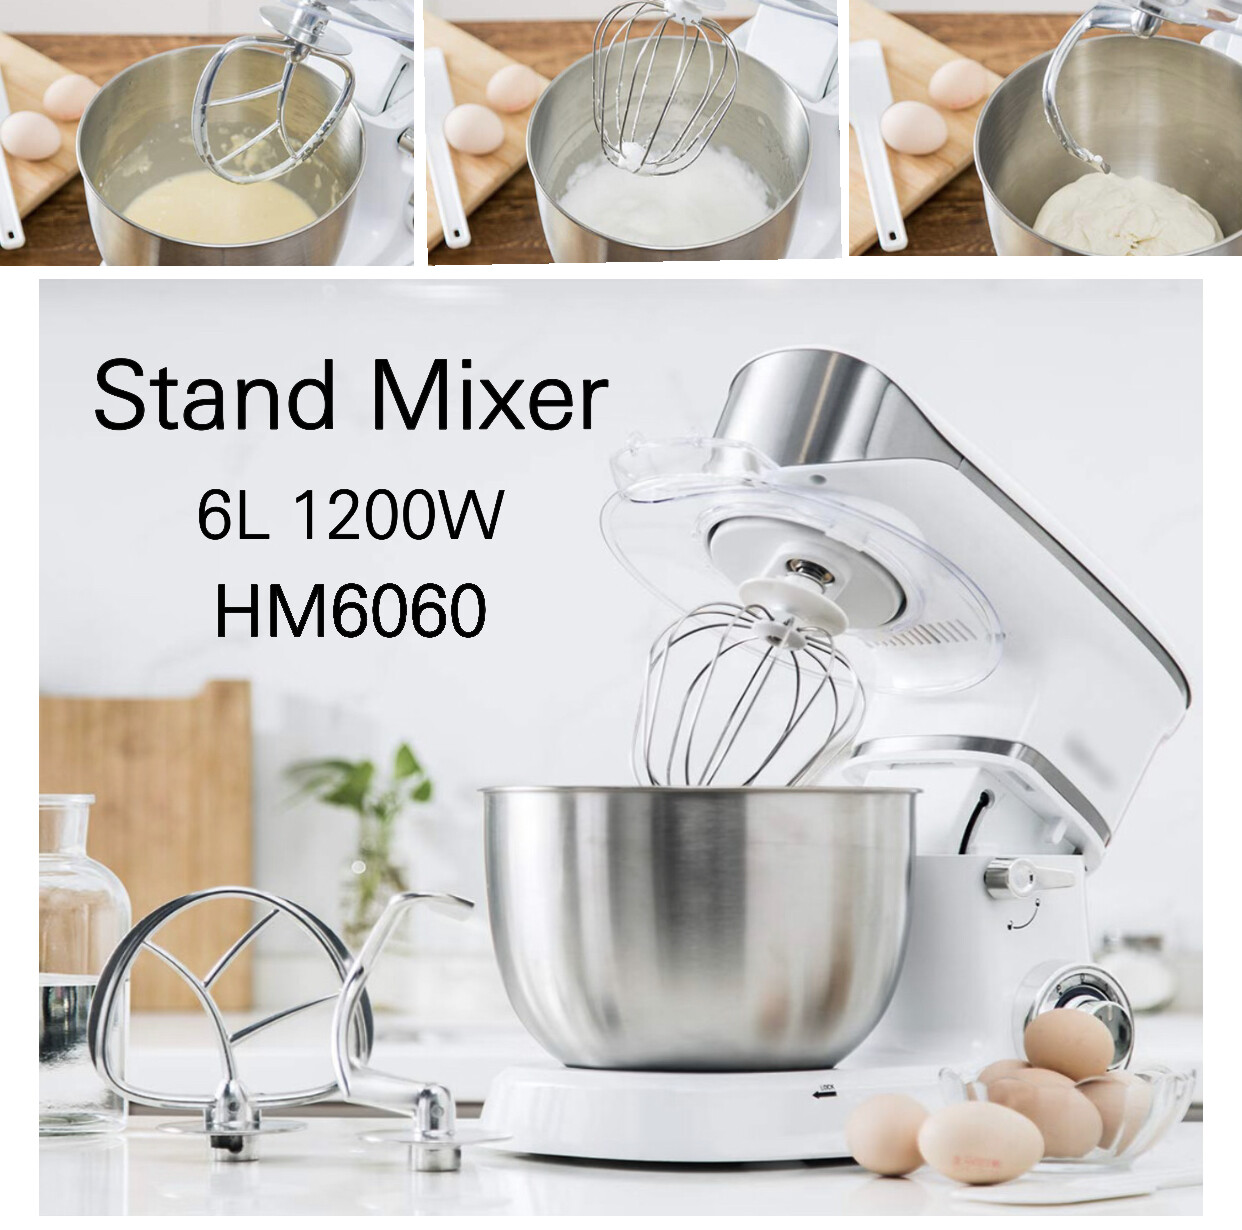 Stand Mixer HM8080